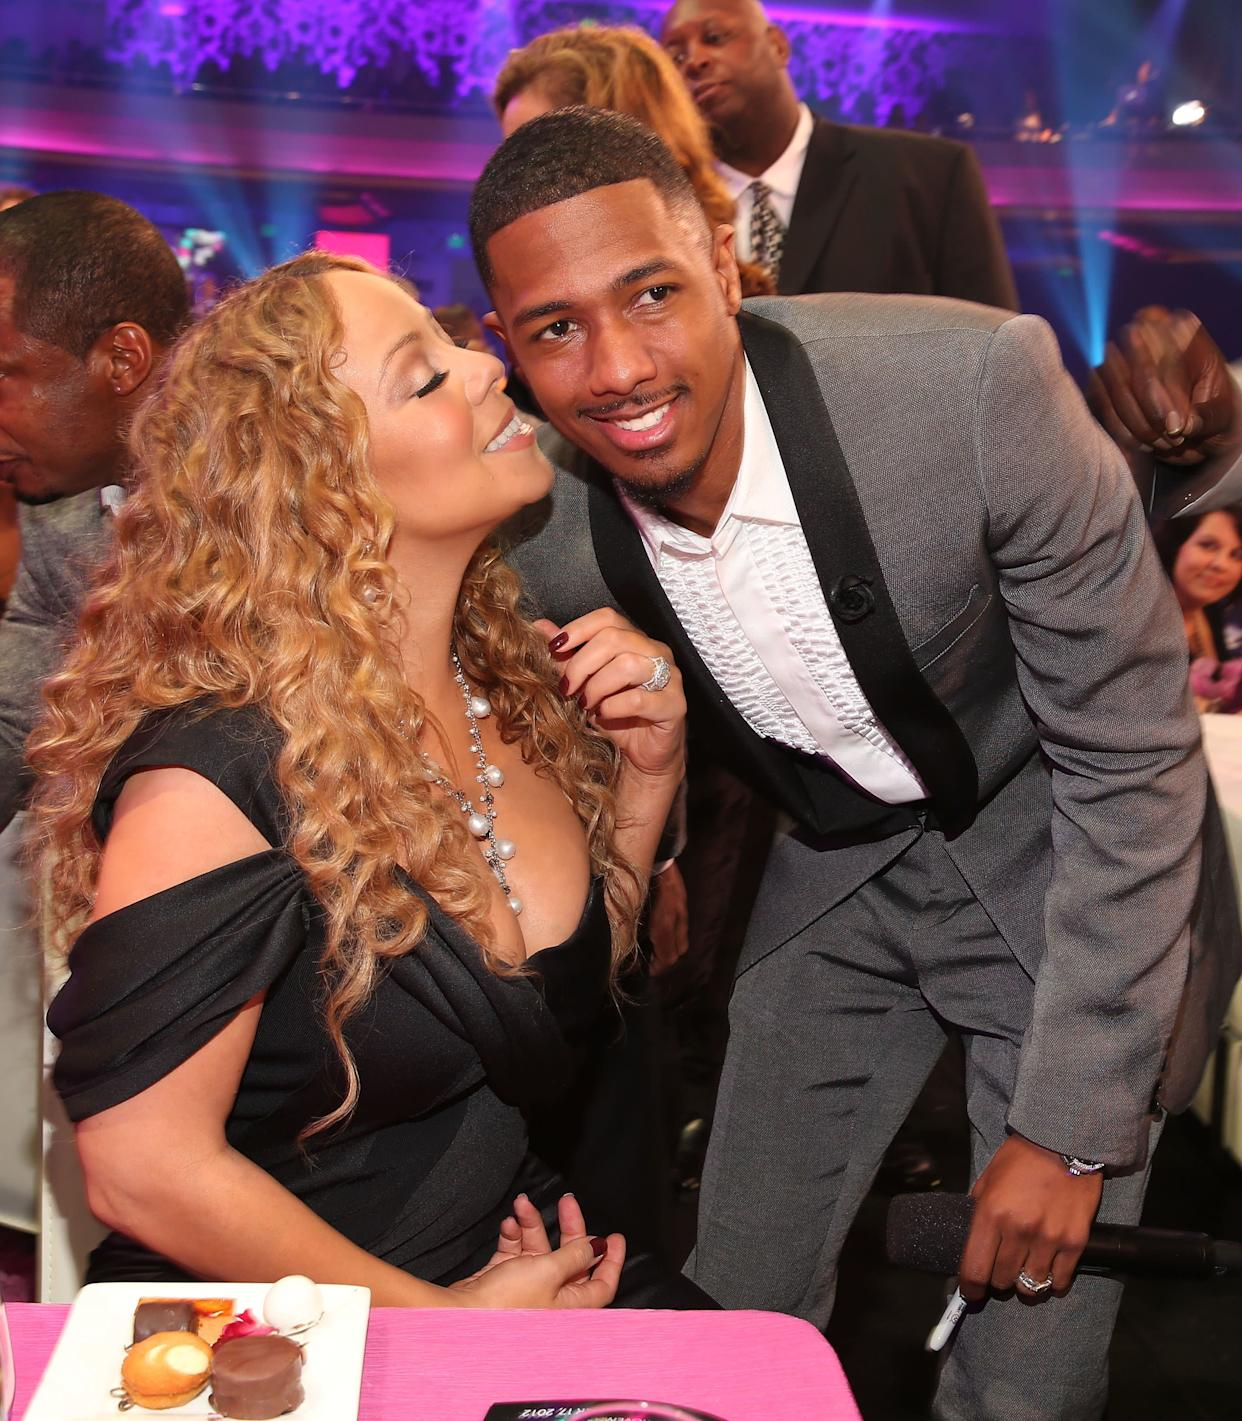 """Cannon once <a href=""""http://www.tmz.com/2012/12/11/nick-cannon-mariah-carey-sex-music-hero/"""" rel=""""nofollow noopener"""" target=""""_blank"""" data-ylk=""""slk:admitted that he made love to estranged wife Mariah Carey"""" class=""""link rapid-noclick-resp"""">admitted that he made love to estranged wife Mariah Carey</a> while listening to her music, adding that he'd masturbate to her tunes """"when she's not there."""" """"Sometimes there's special nights when you turn the music on and sometimes it's morning, you roll over and get it poppin'!"""""""